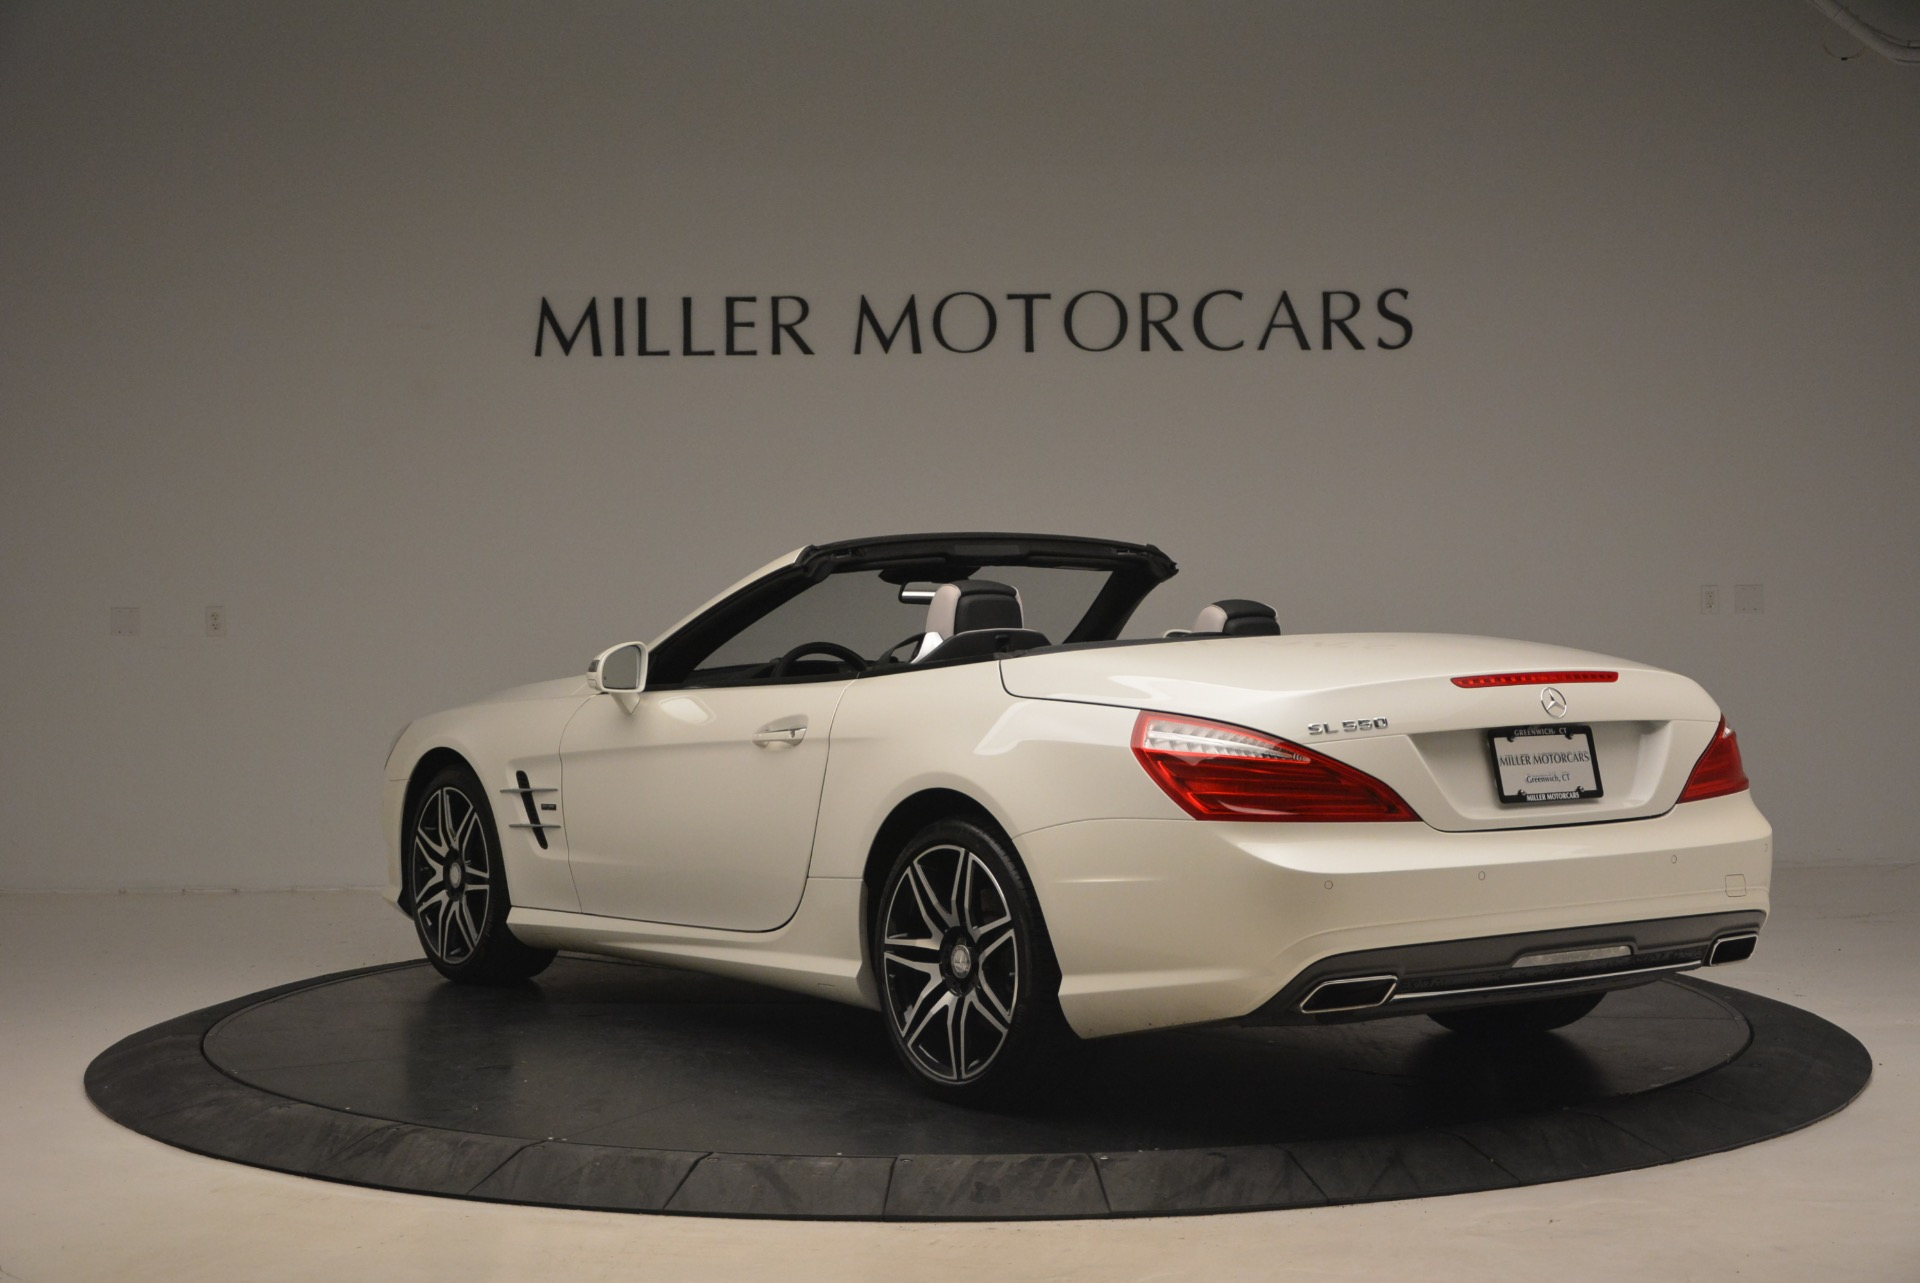 Used 2015 Mercedes Benz SL-Class SL 550 For Sale In Greenwich, CT 1261_p5